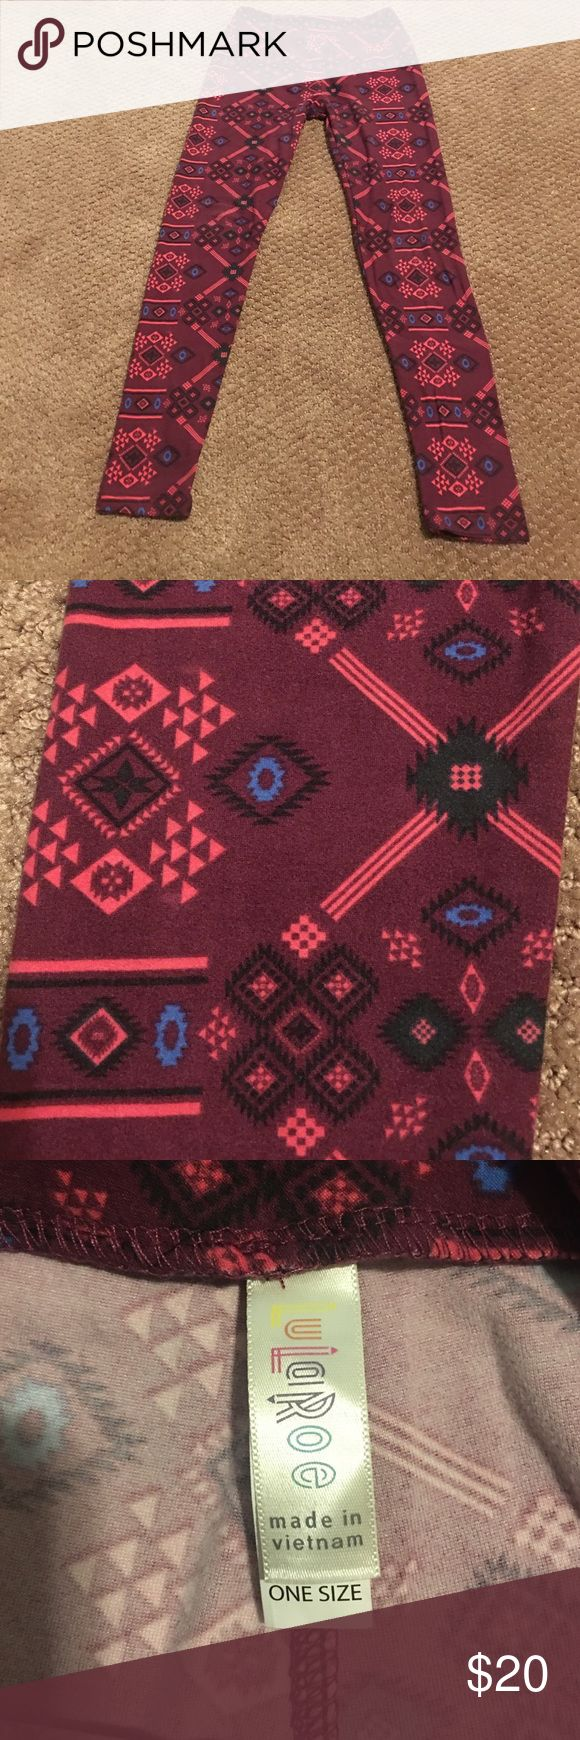 One size Lularoe Leggings Azteca print Lularoe leggings. Only worn once. Very soft and comfy. One size! LuLaRoe Pants Leggings